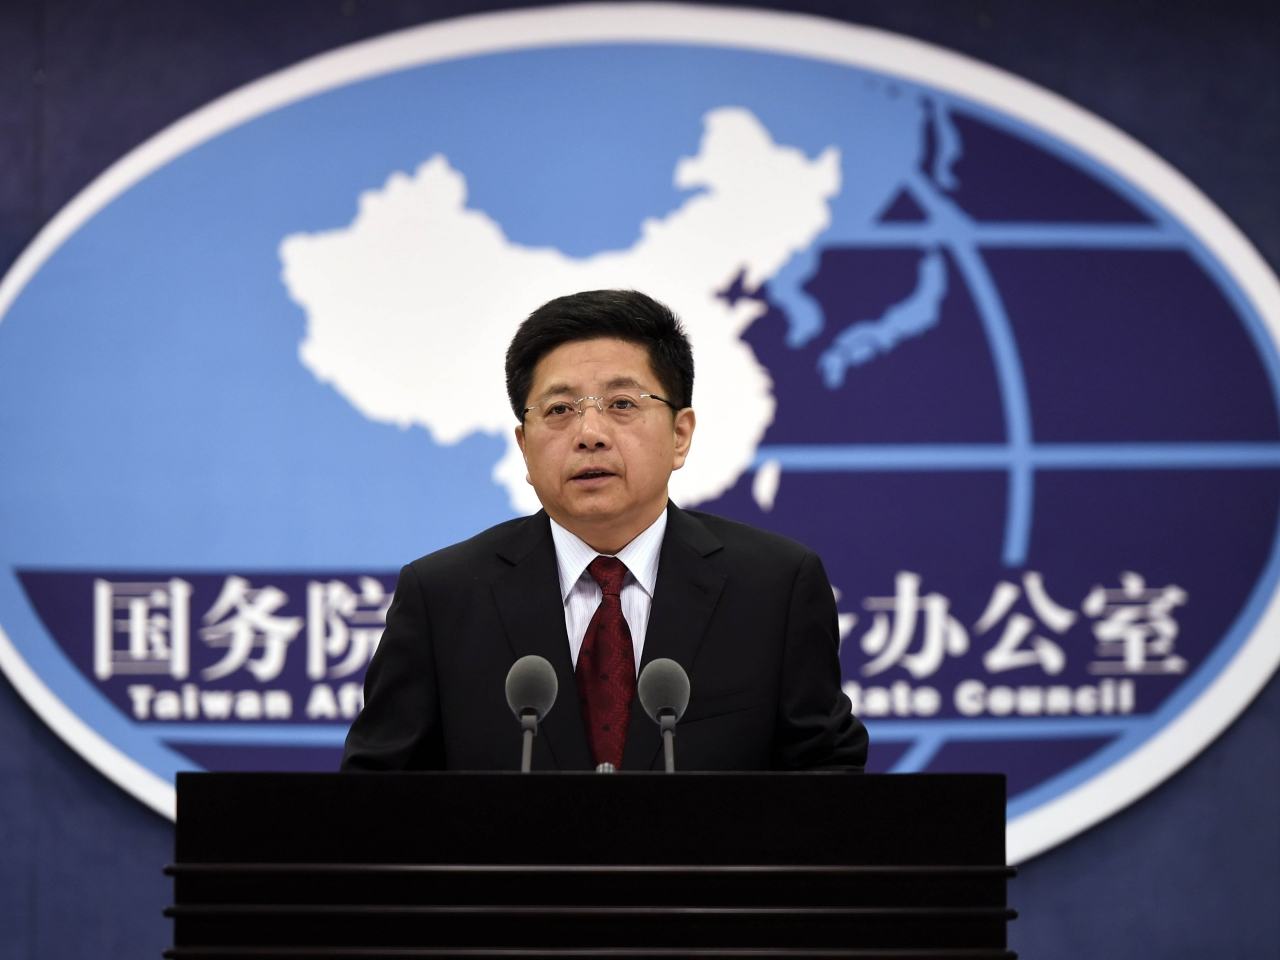 """Ma Xiaoguang expressed """"firm support"""" for the Hong Kong government's policies towards Taiwan. Photo: Xinhua"""